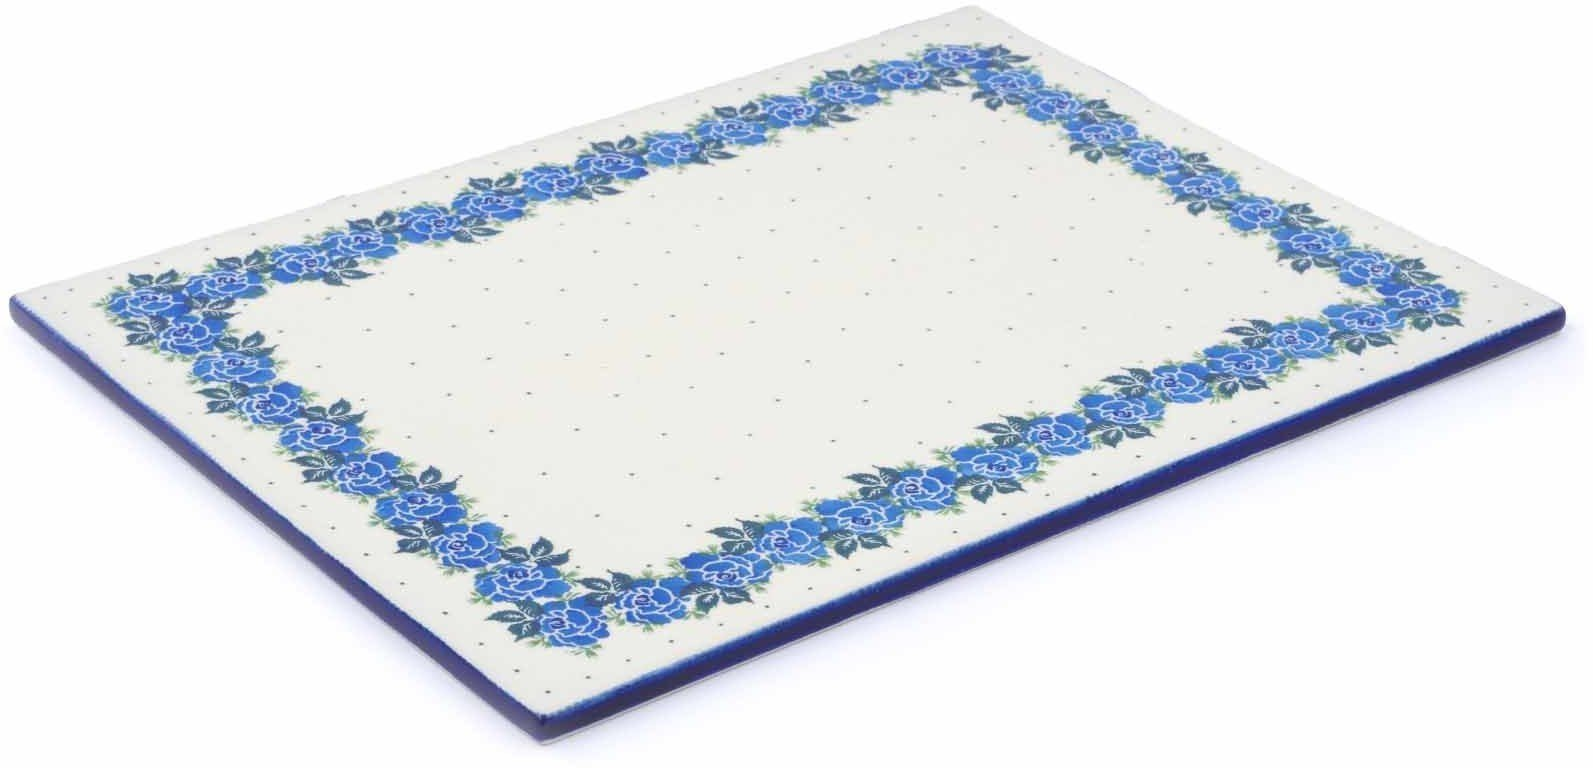 Polish Pottery 15¼-inch Cookie Sheet made by Ceramika Artystyczna (Blue Garland Theme) + Certificate of Authenticity